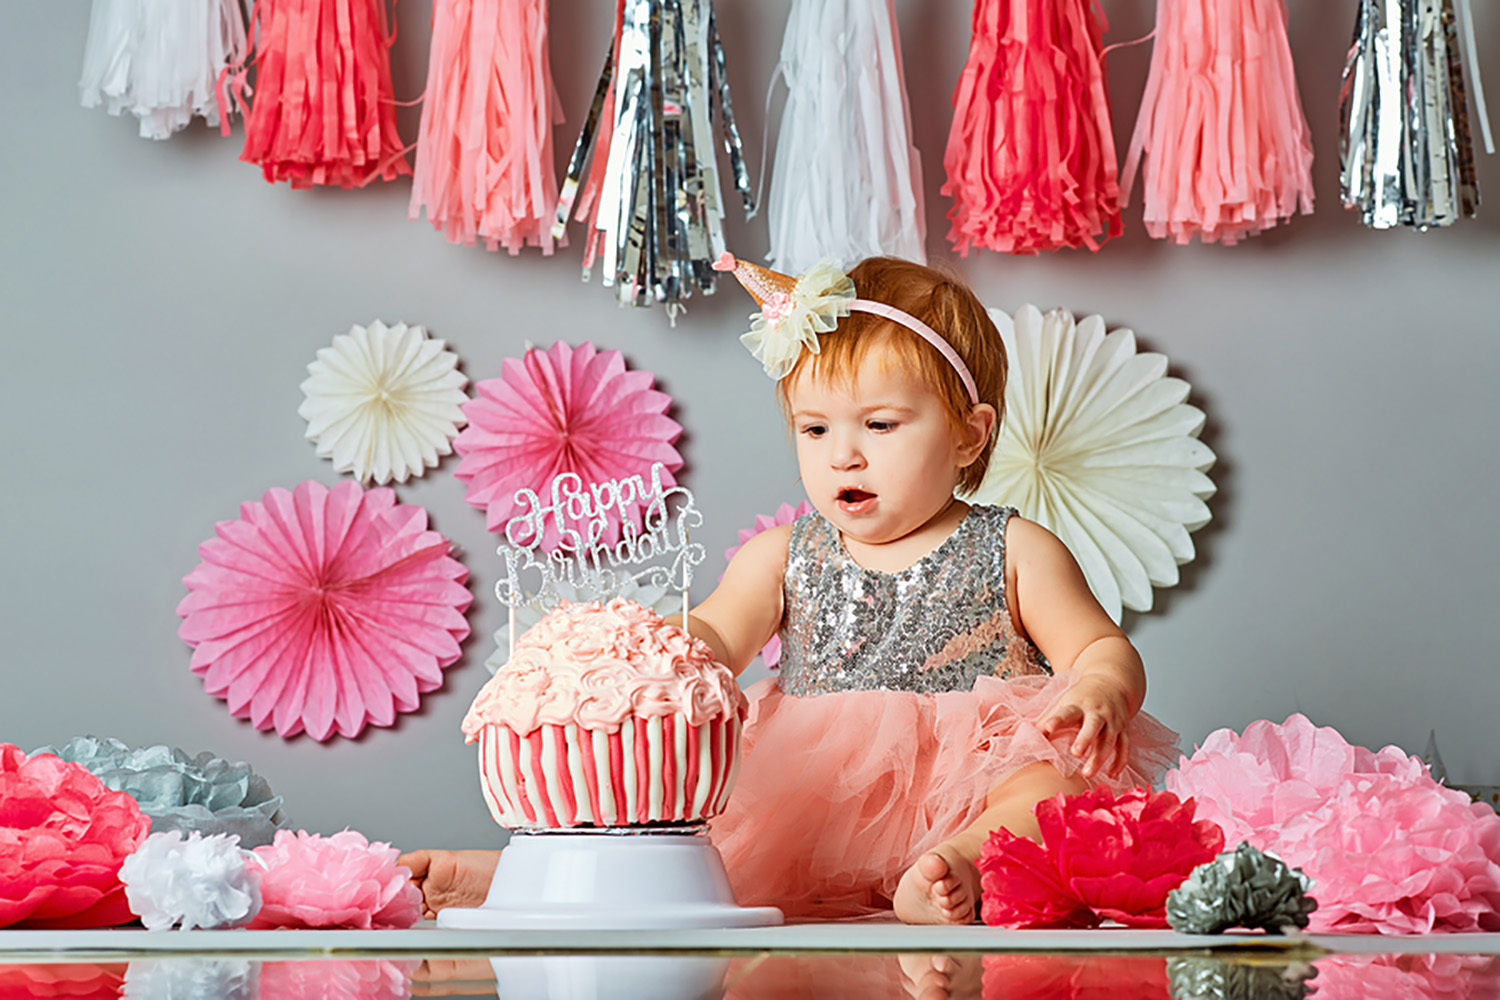 Baby's 1st Birthday Gifts & Party Ideas For Boys & Girls